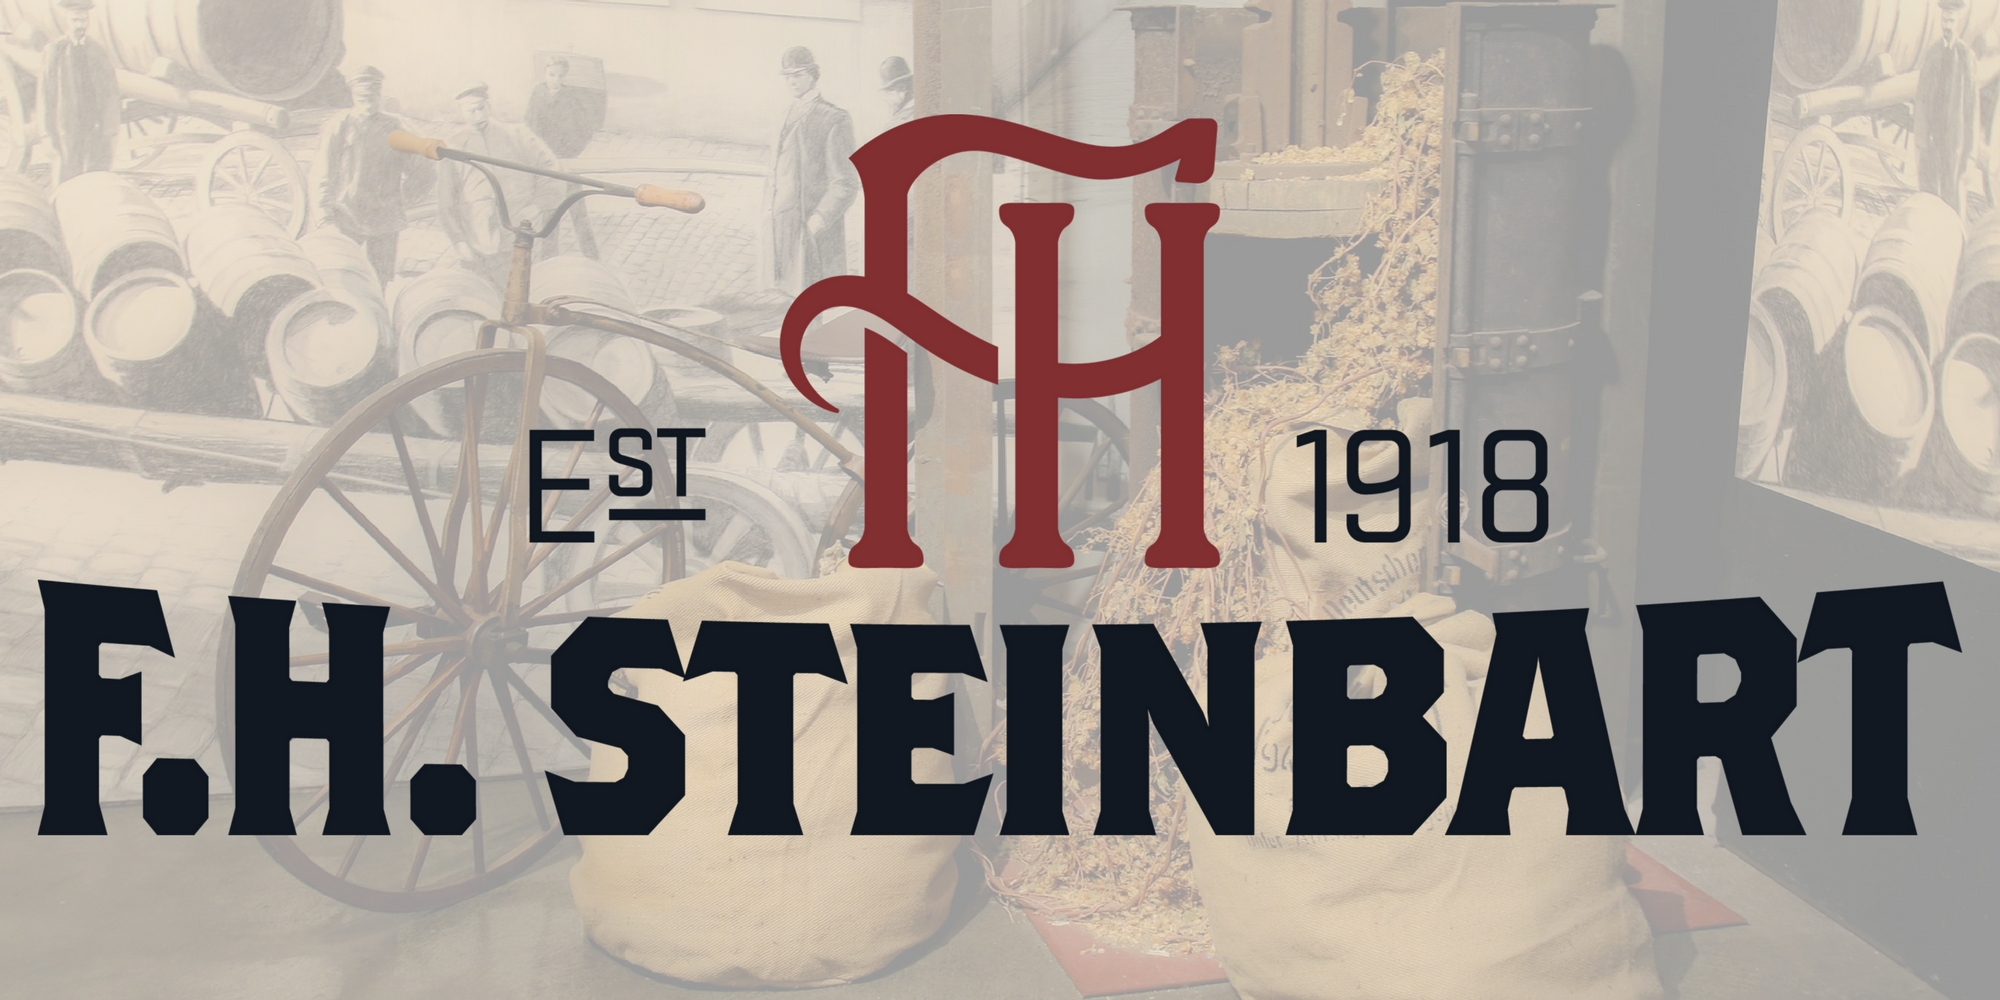 FH STEINBART HOME BREW SUPPLY